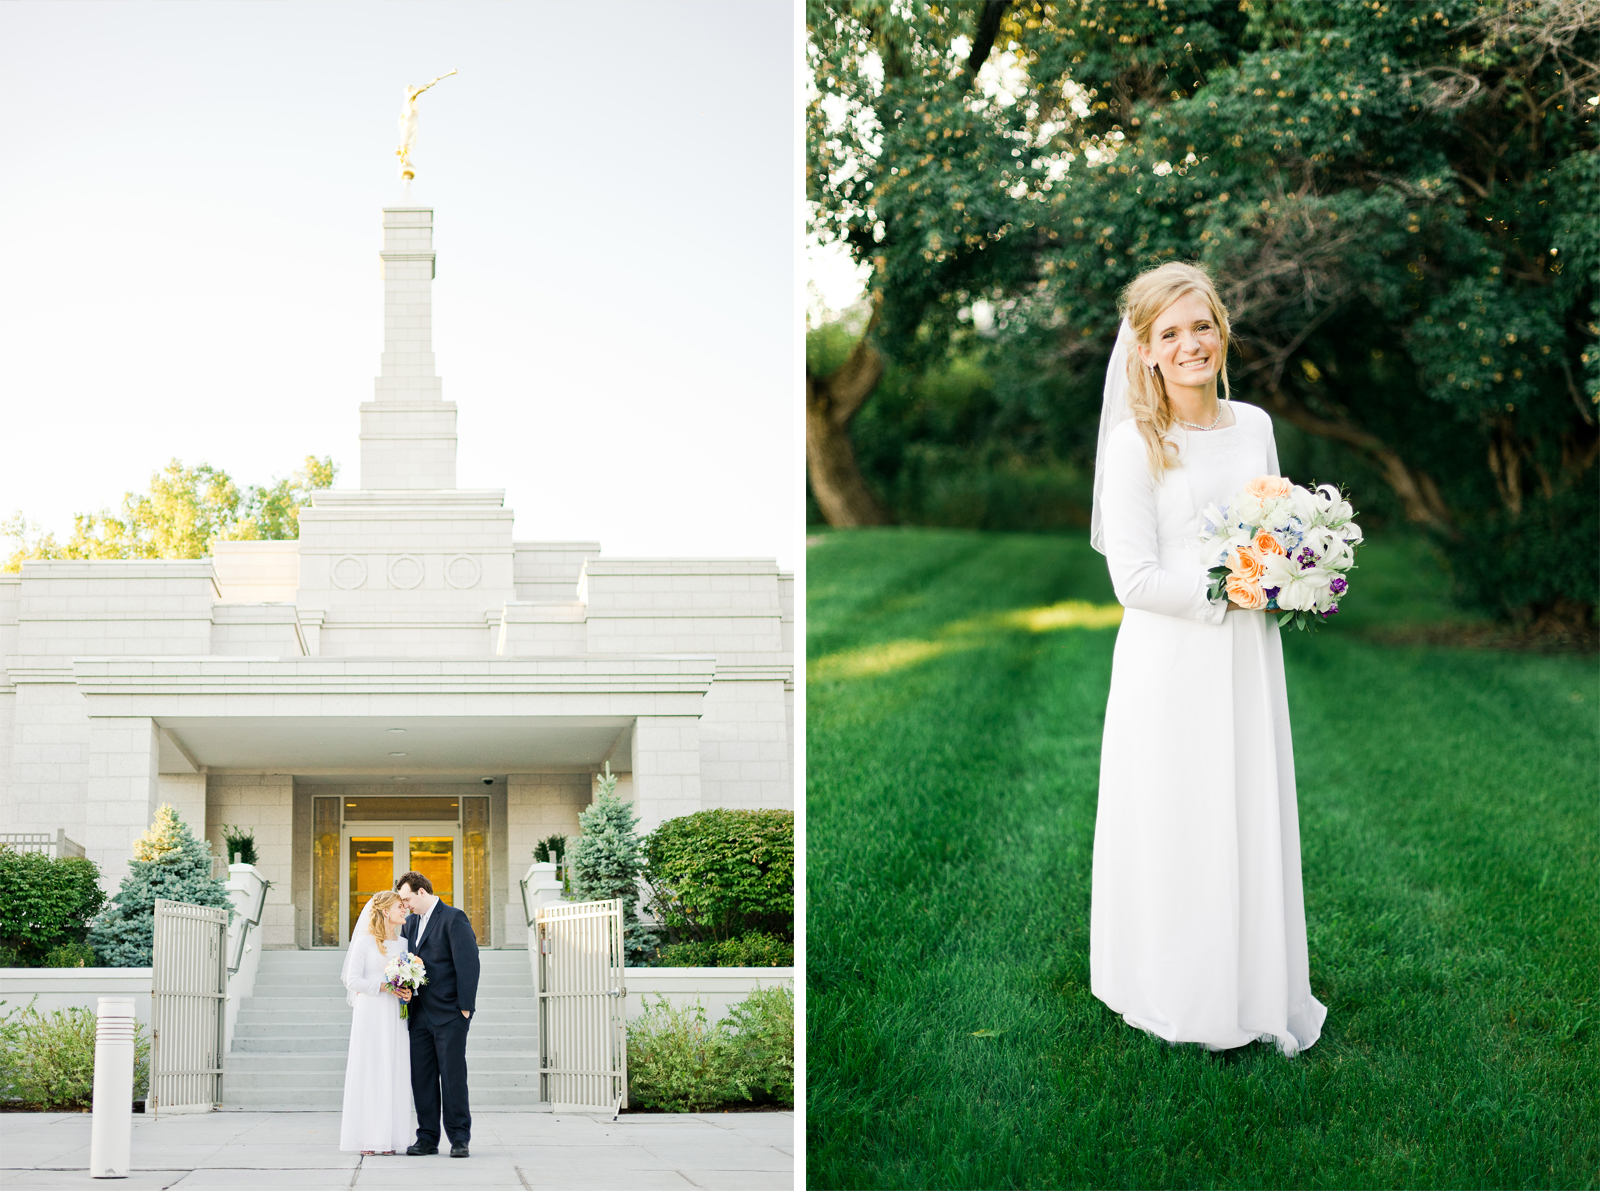 st_paul_lds_temple_wedding_002.jpg